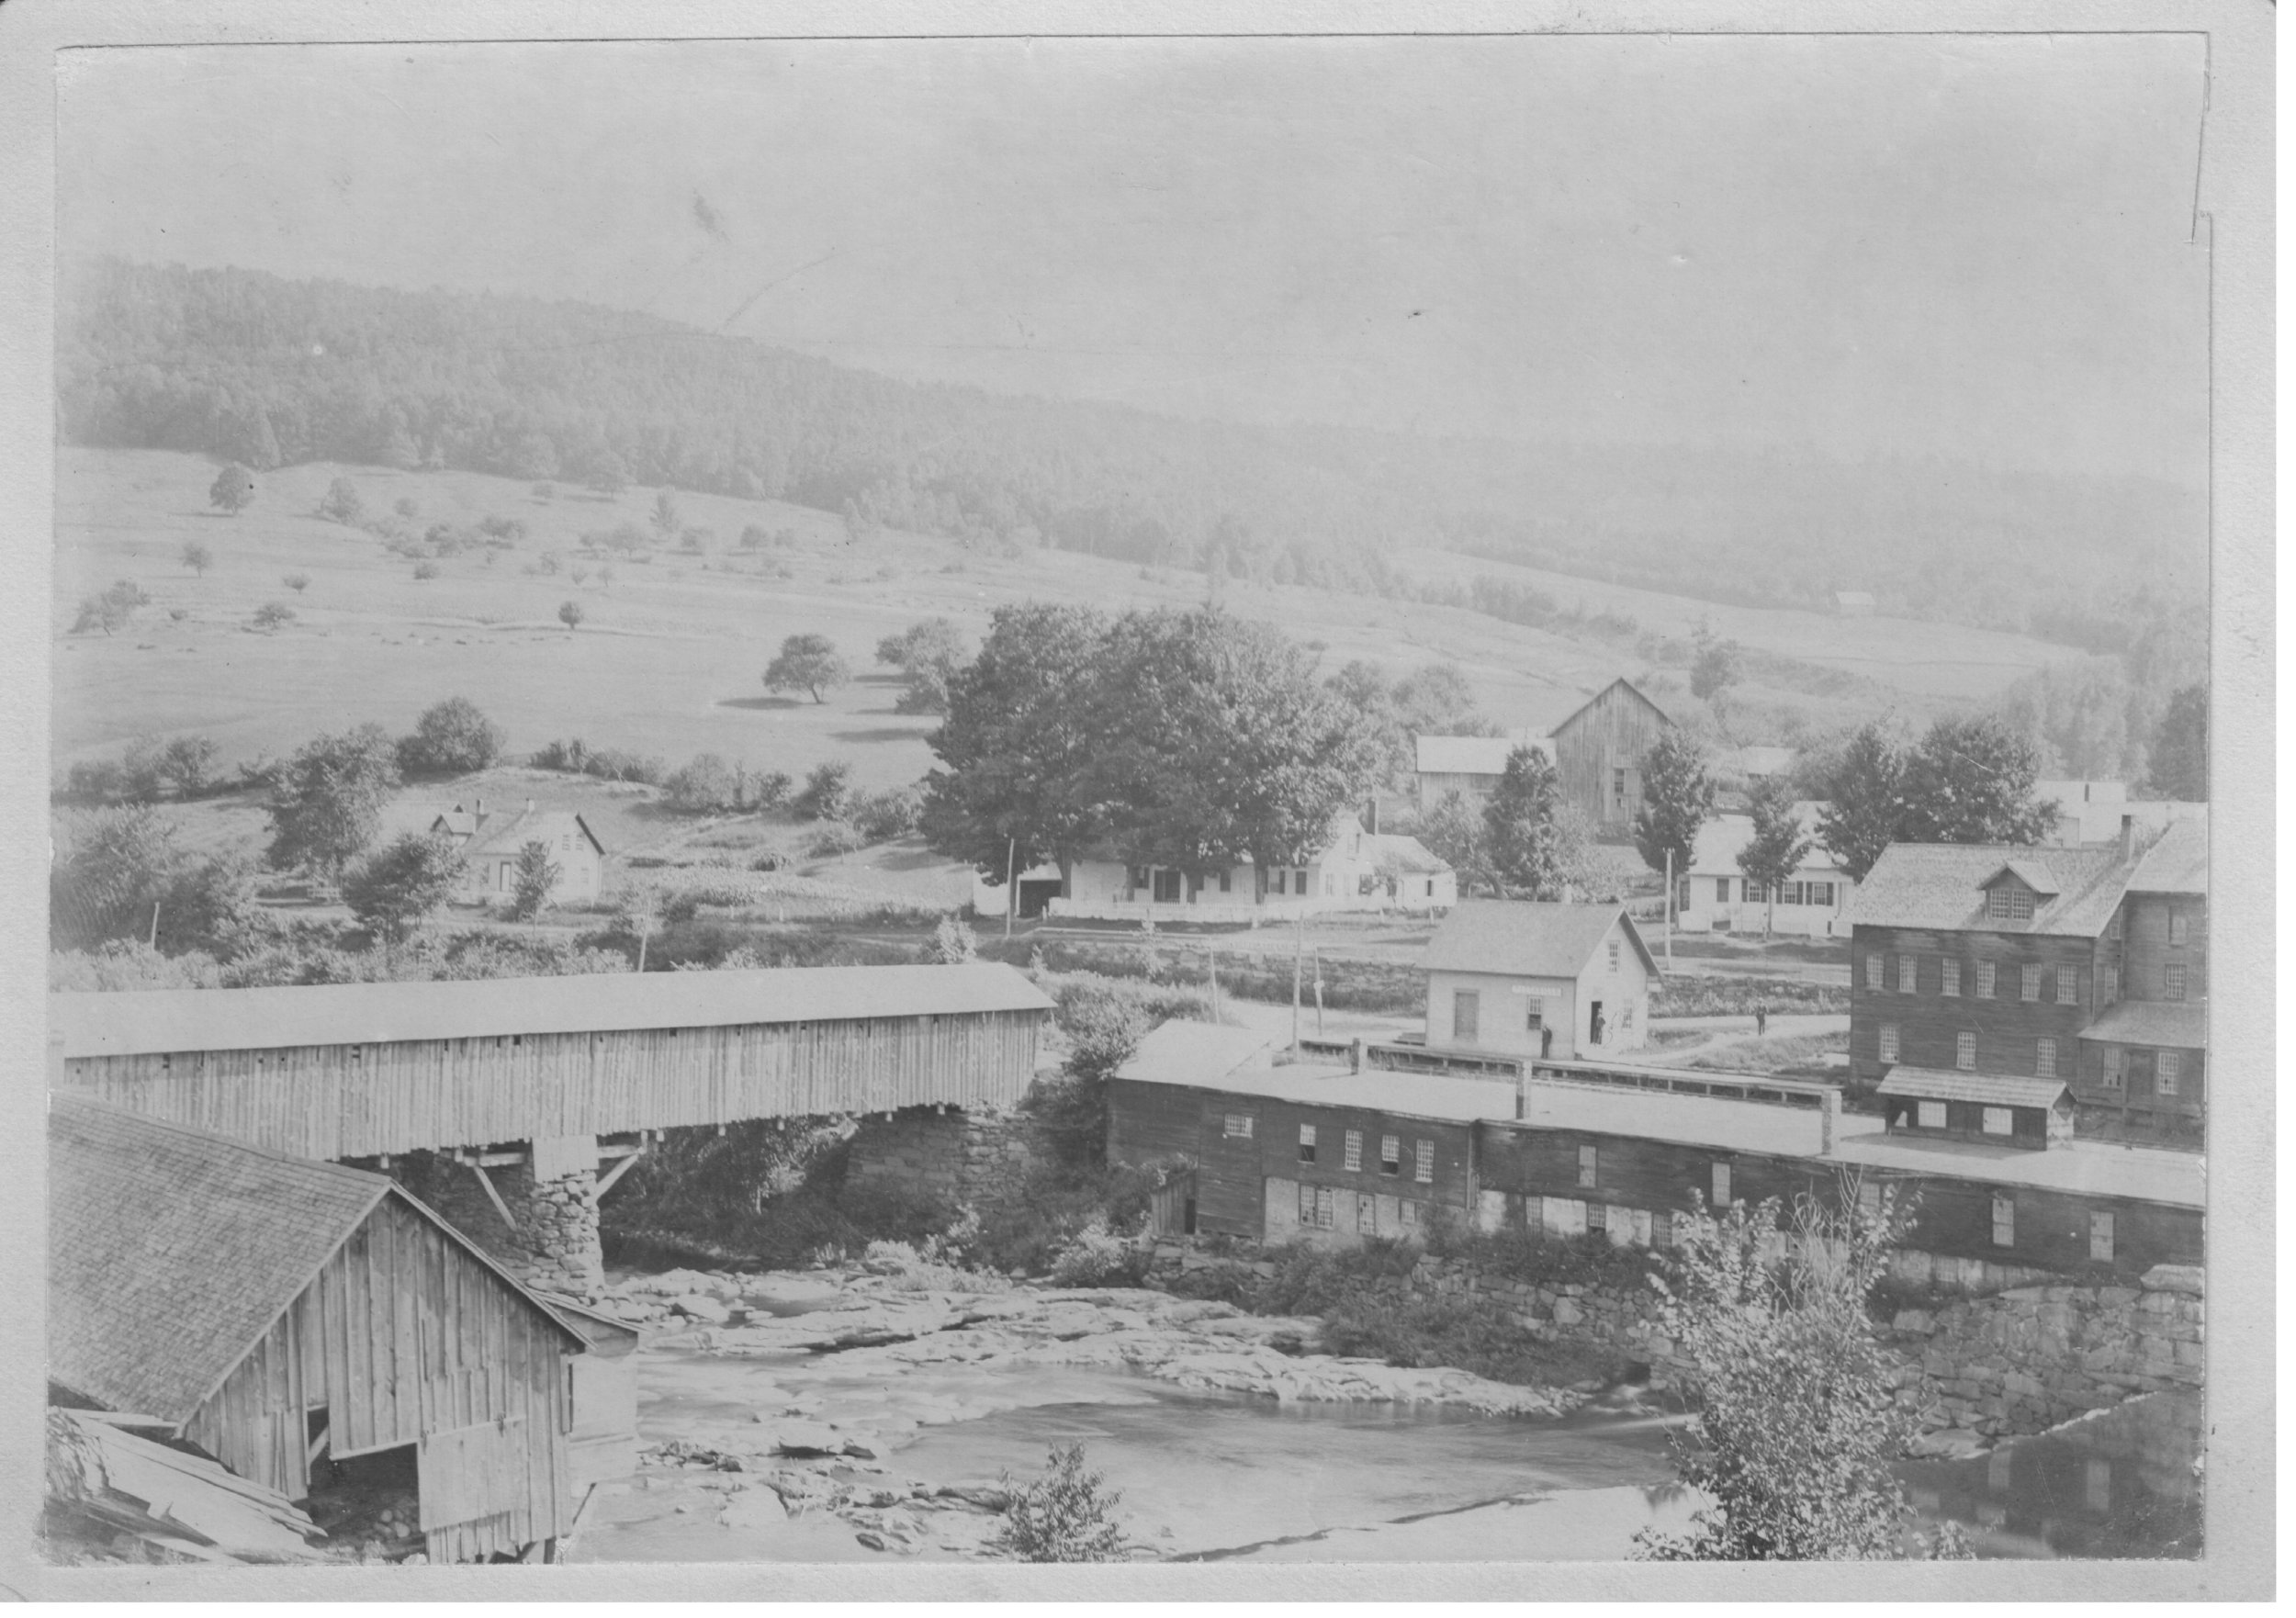 The Center of Taftsville - A view of the bridge, mills, railroad depot, houses and other buildings.